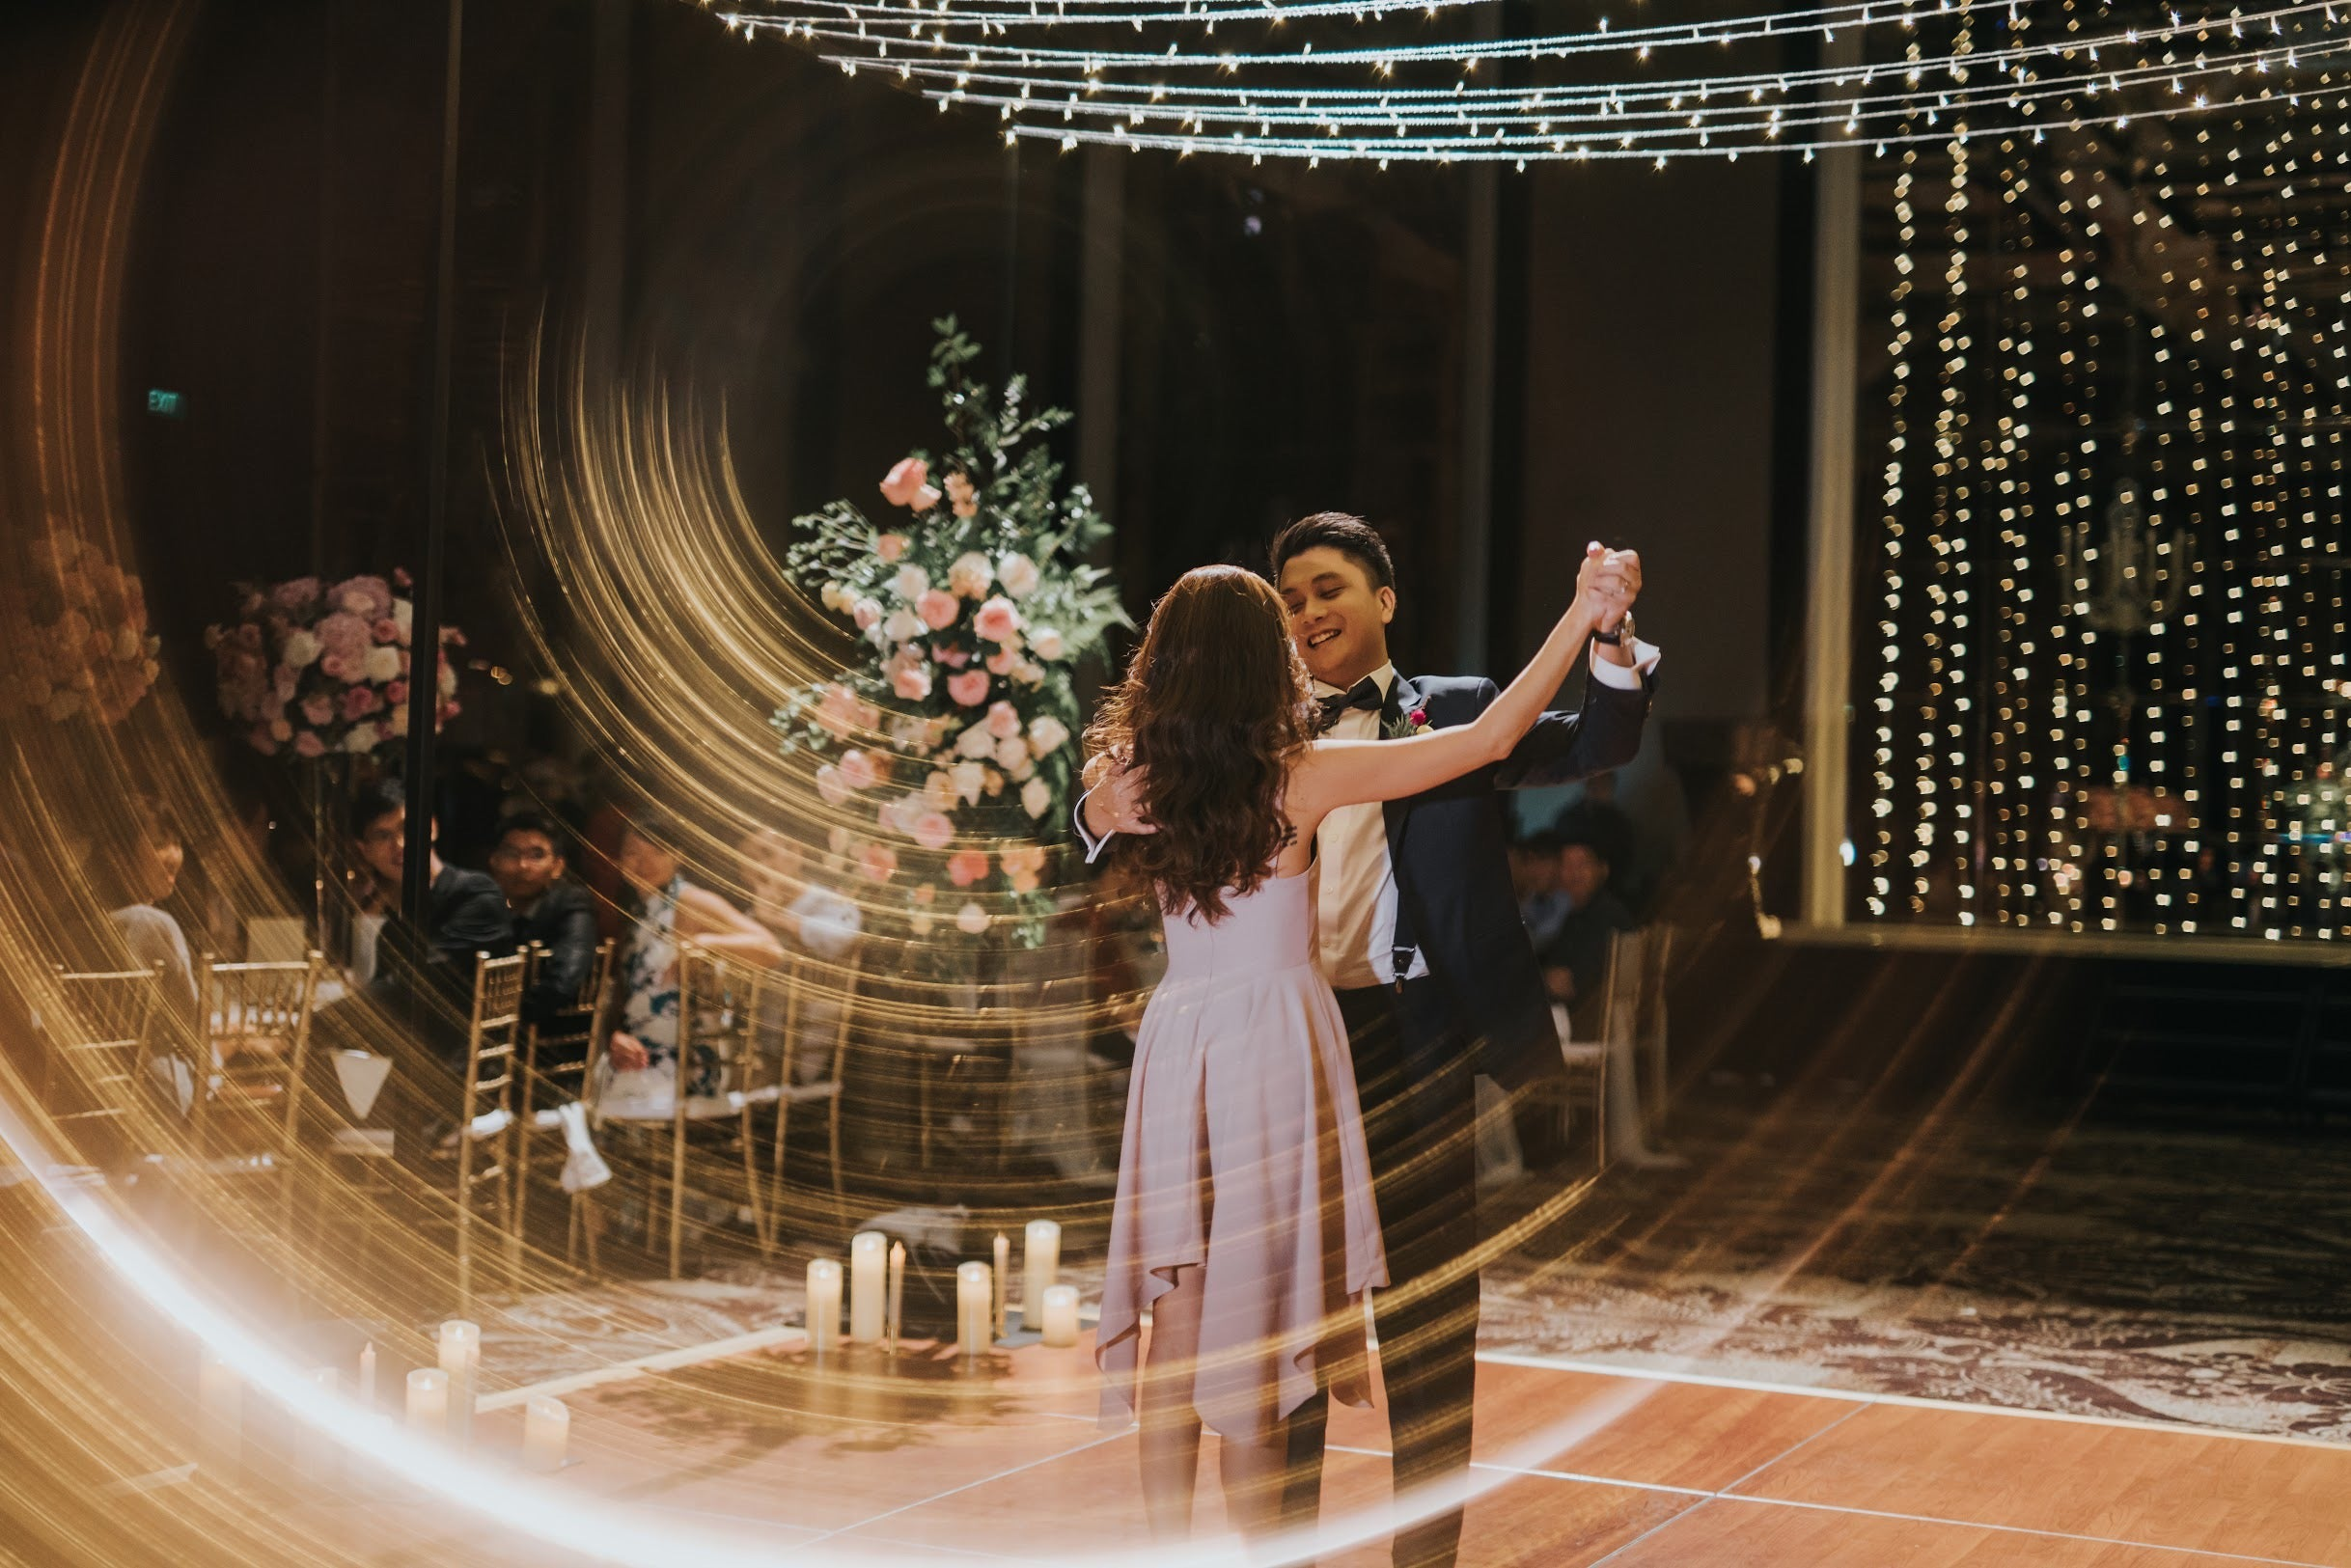 St Regis ballroom dancing lesson for wedding guests by wedding couple